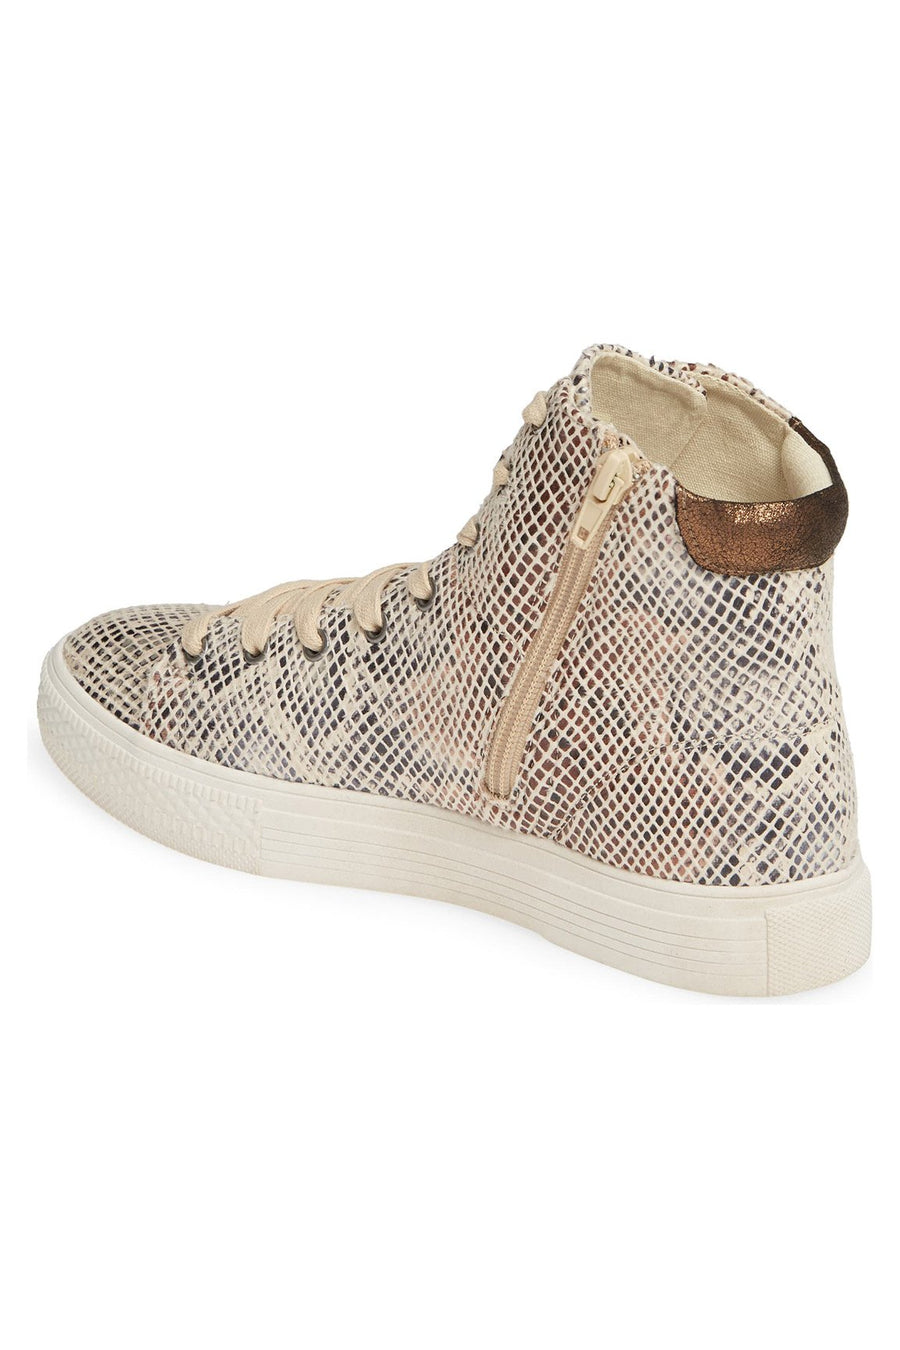 Eagle Micro Snake Print Natural High Top Sneaker Master